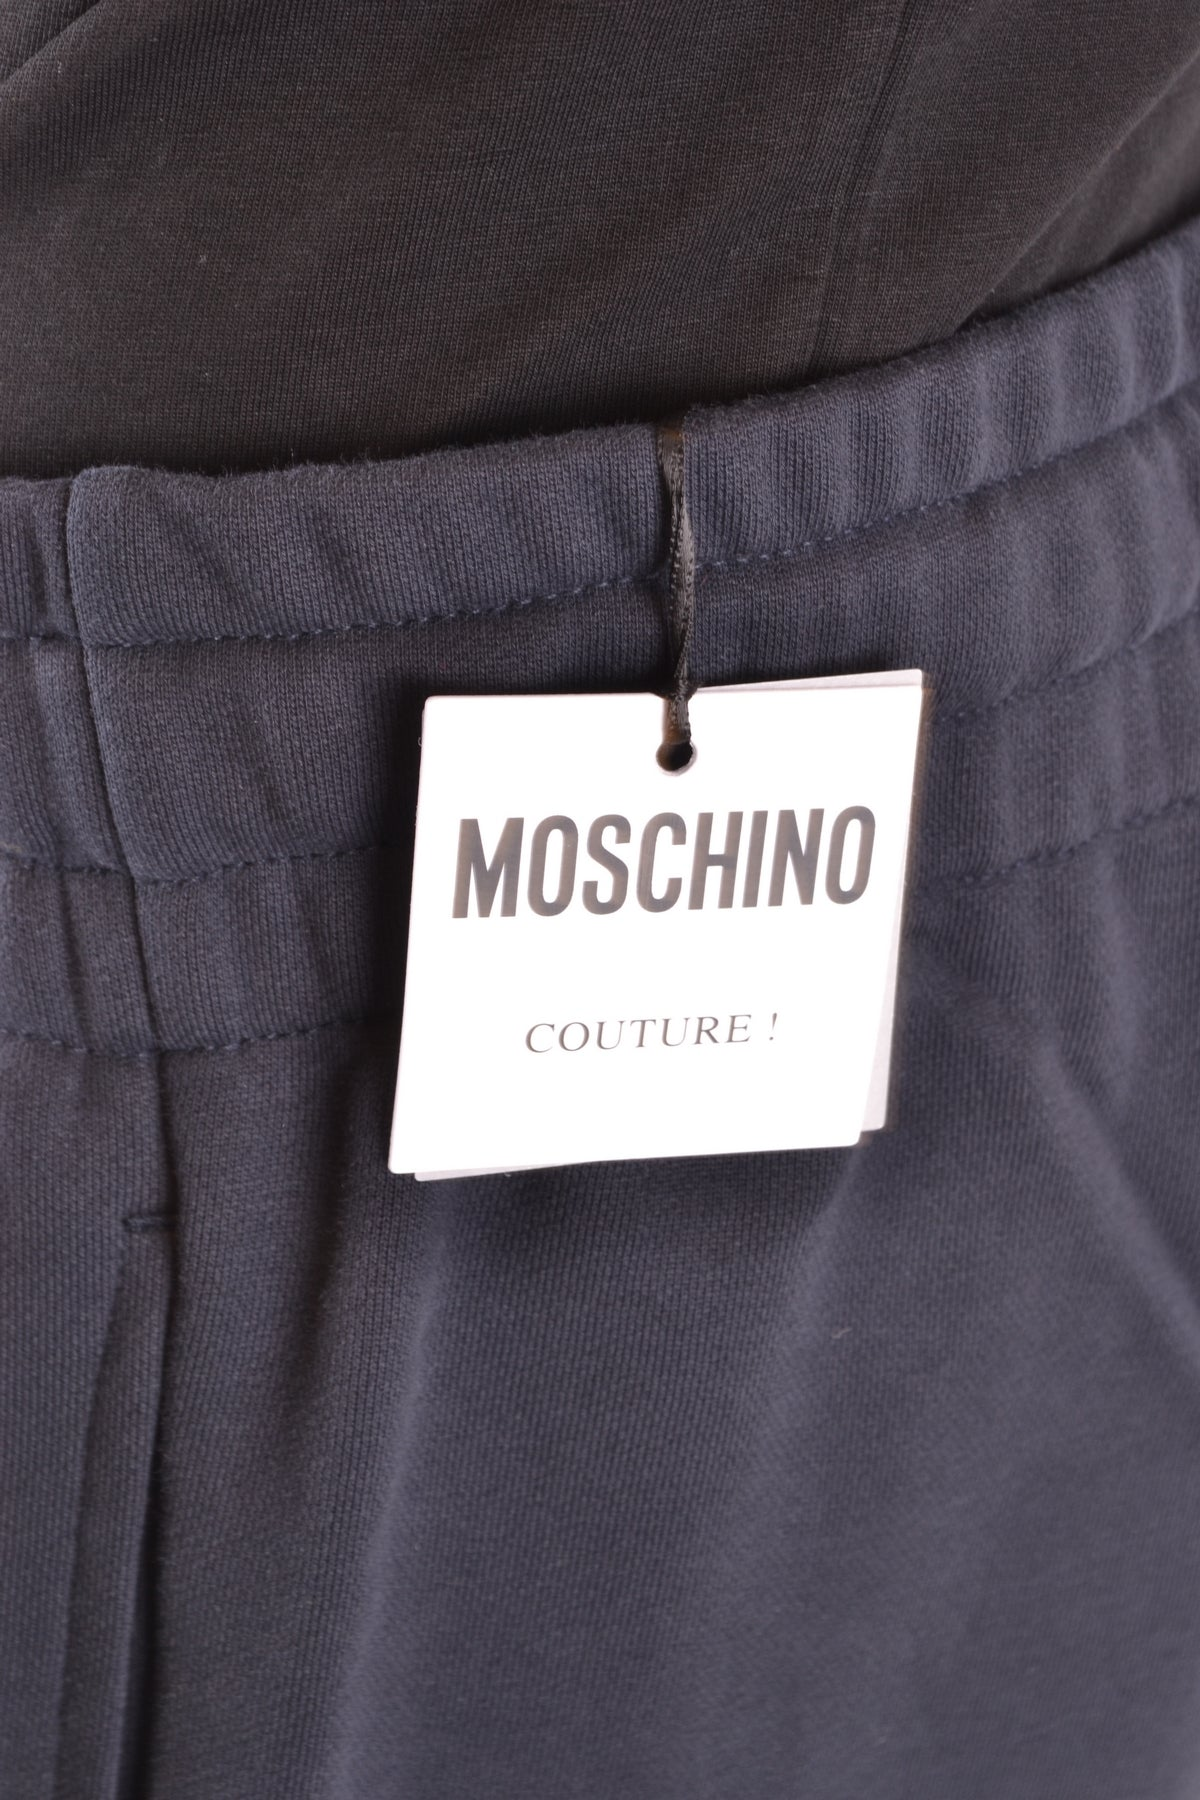 Trousers Moschino--Product Details Terms: New With LabelYear: 2019Main Color: BlueGender: ManMade In: PortugalManufacturer Part Number: Z A0721 0240 1001Size: ItSeason: Spring / SummerClothing Type: TrousersComposition: Cotton 100%-Keyomi-Sook